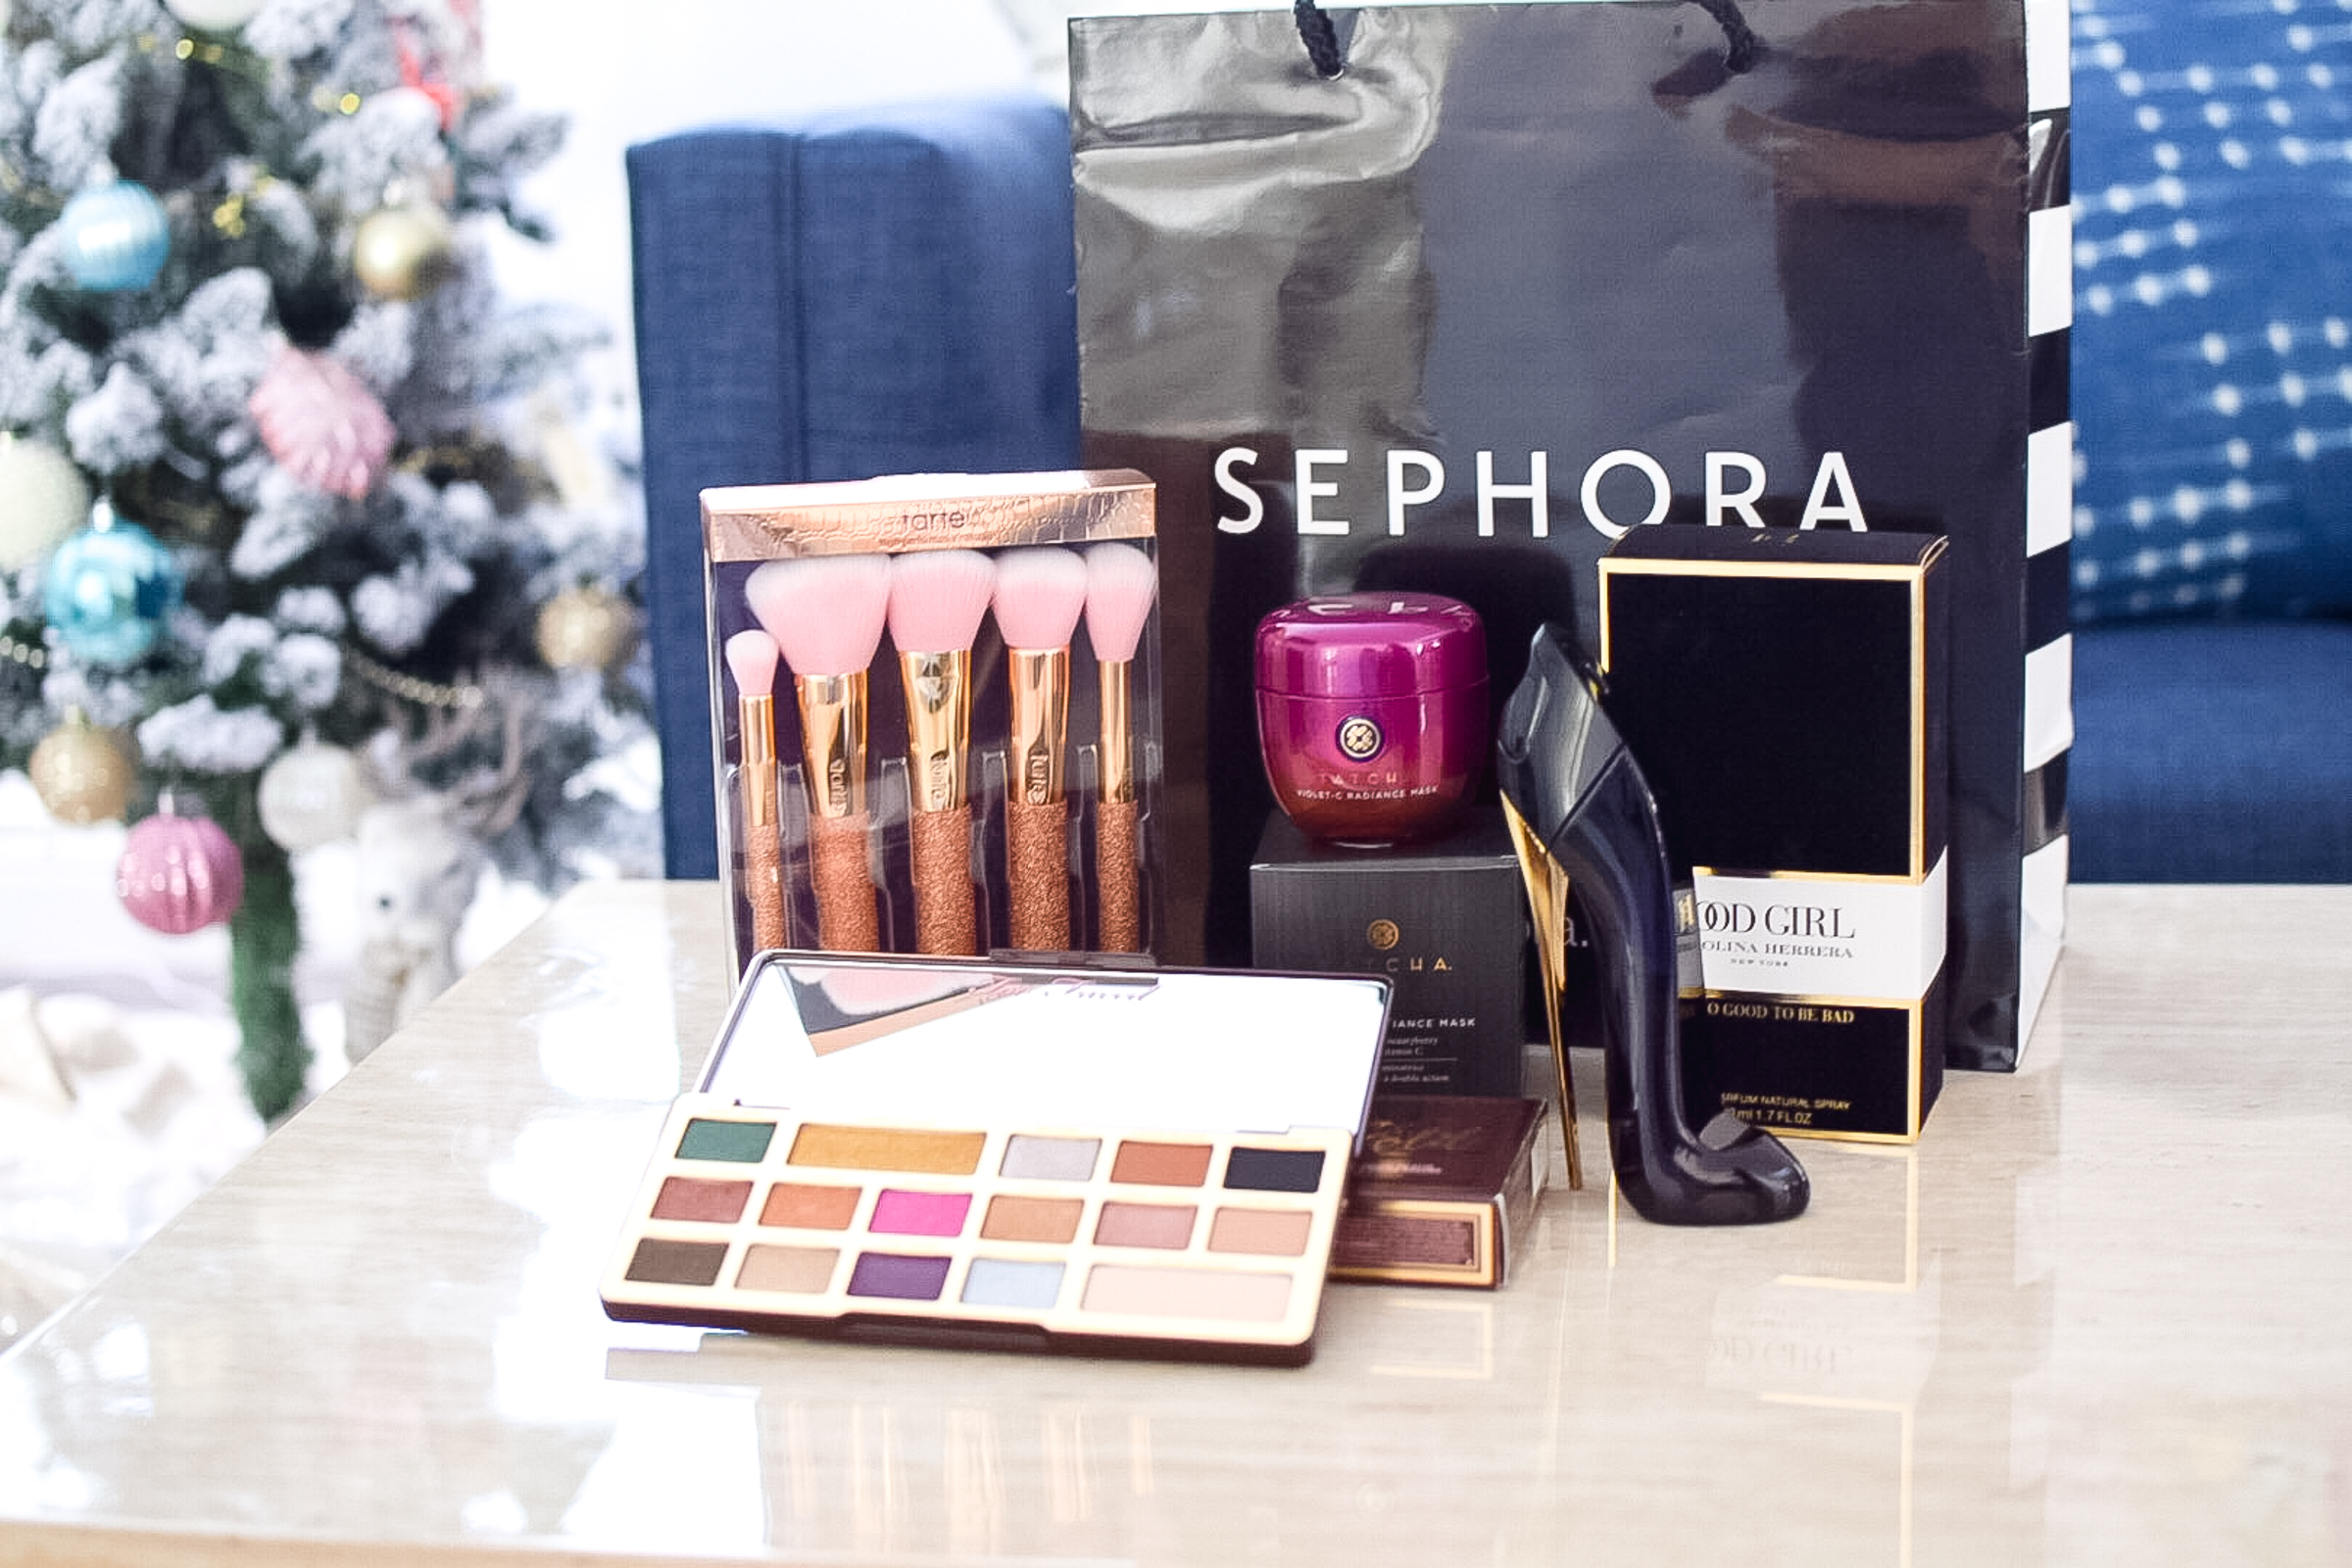 Last Minute Beauty Gift Ideas from Sephora inside JCPenney by popular Utah style blogger Sandy A La Mode